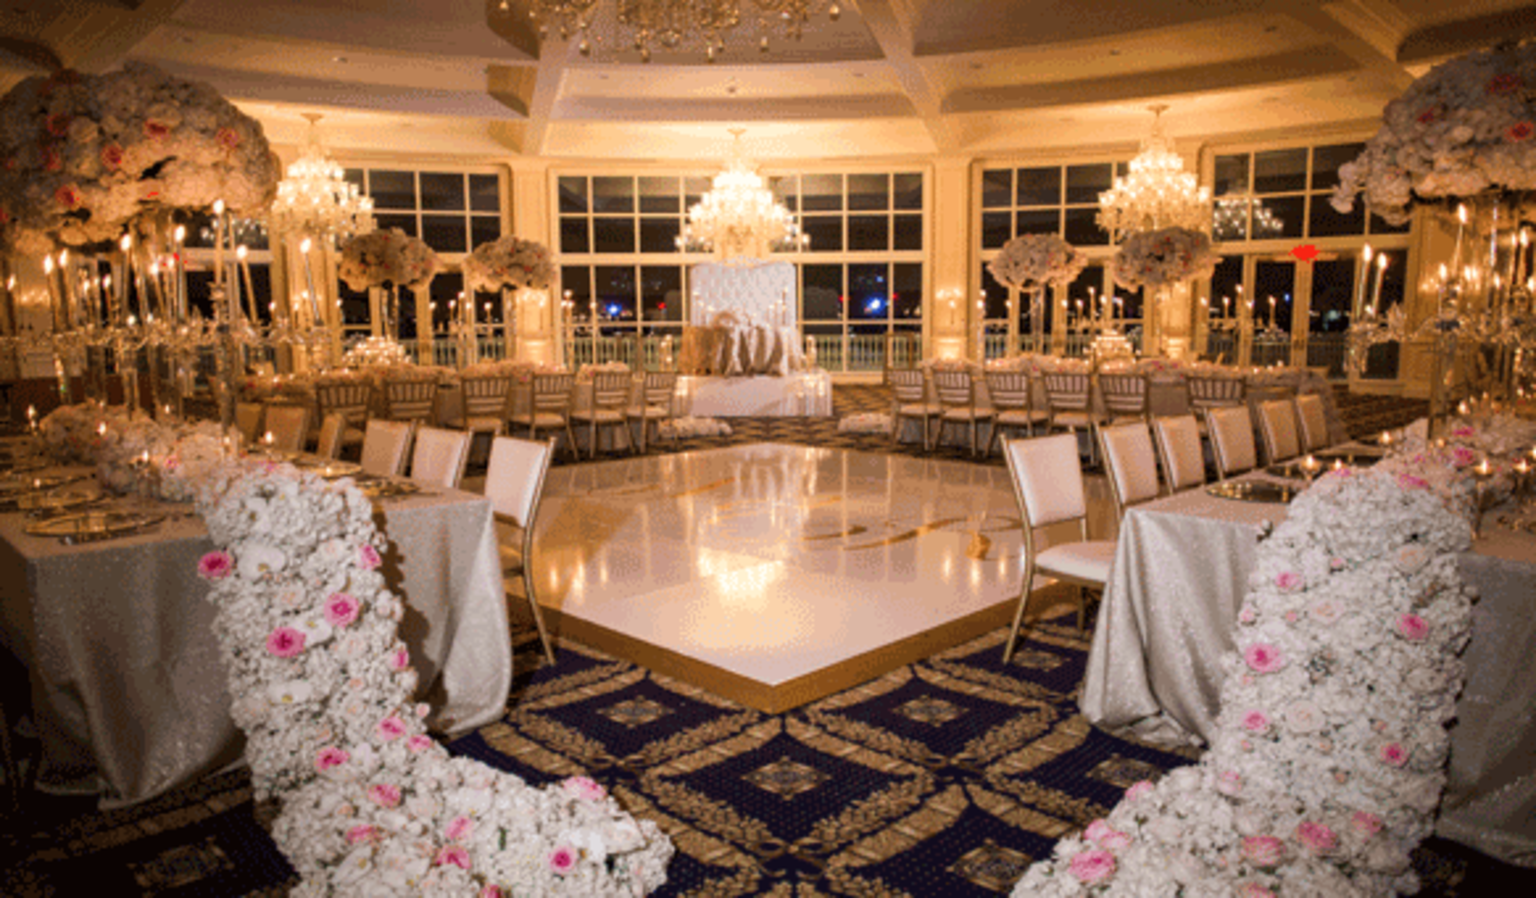 Wedding venues in miami trump doral wedding venues trump national wedding venue junglespirit Image collections